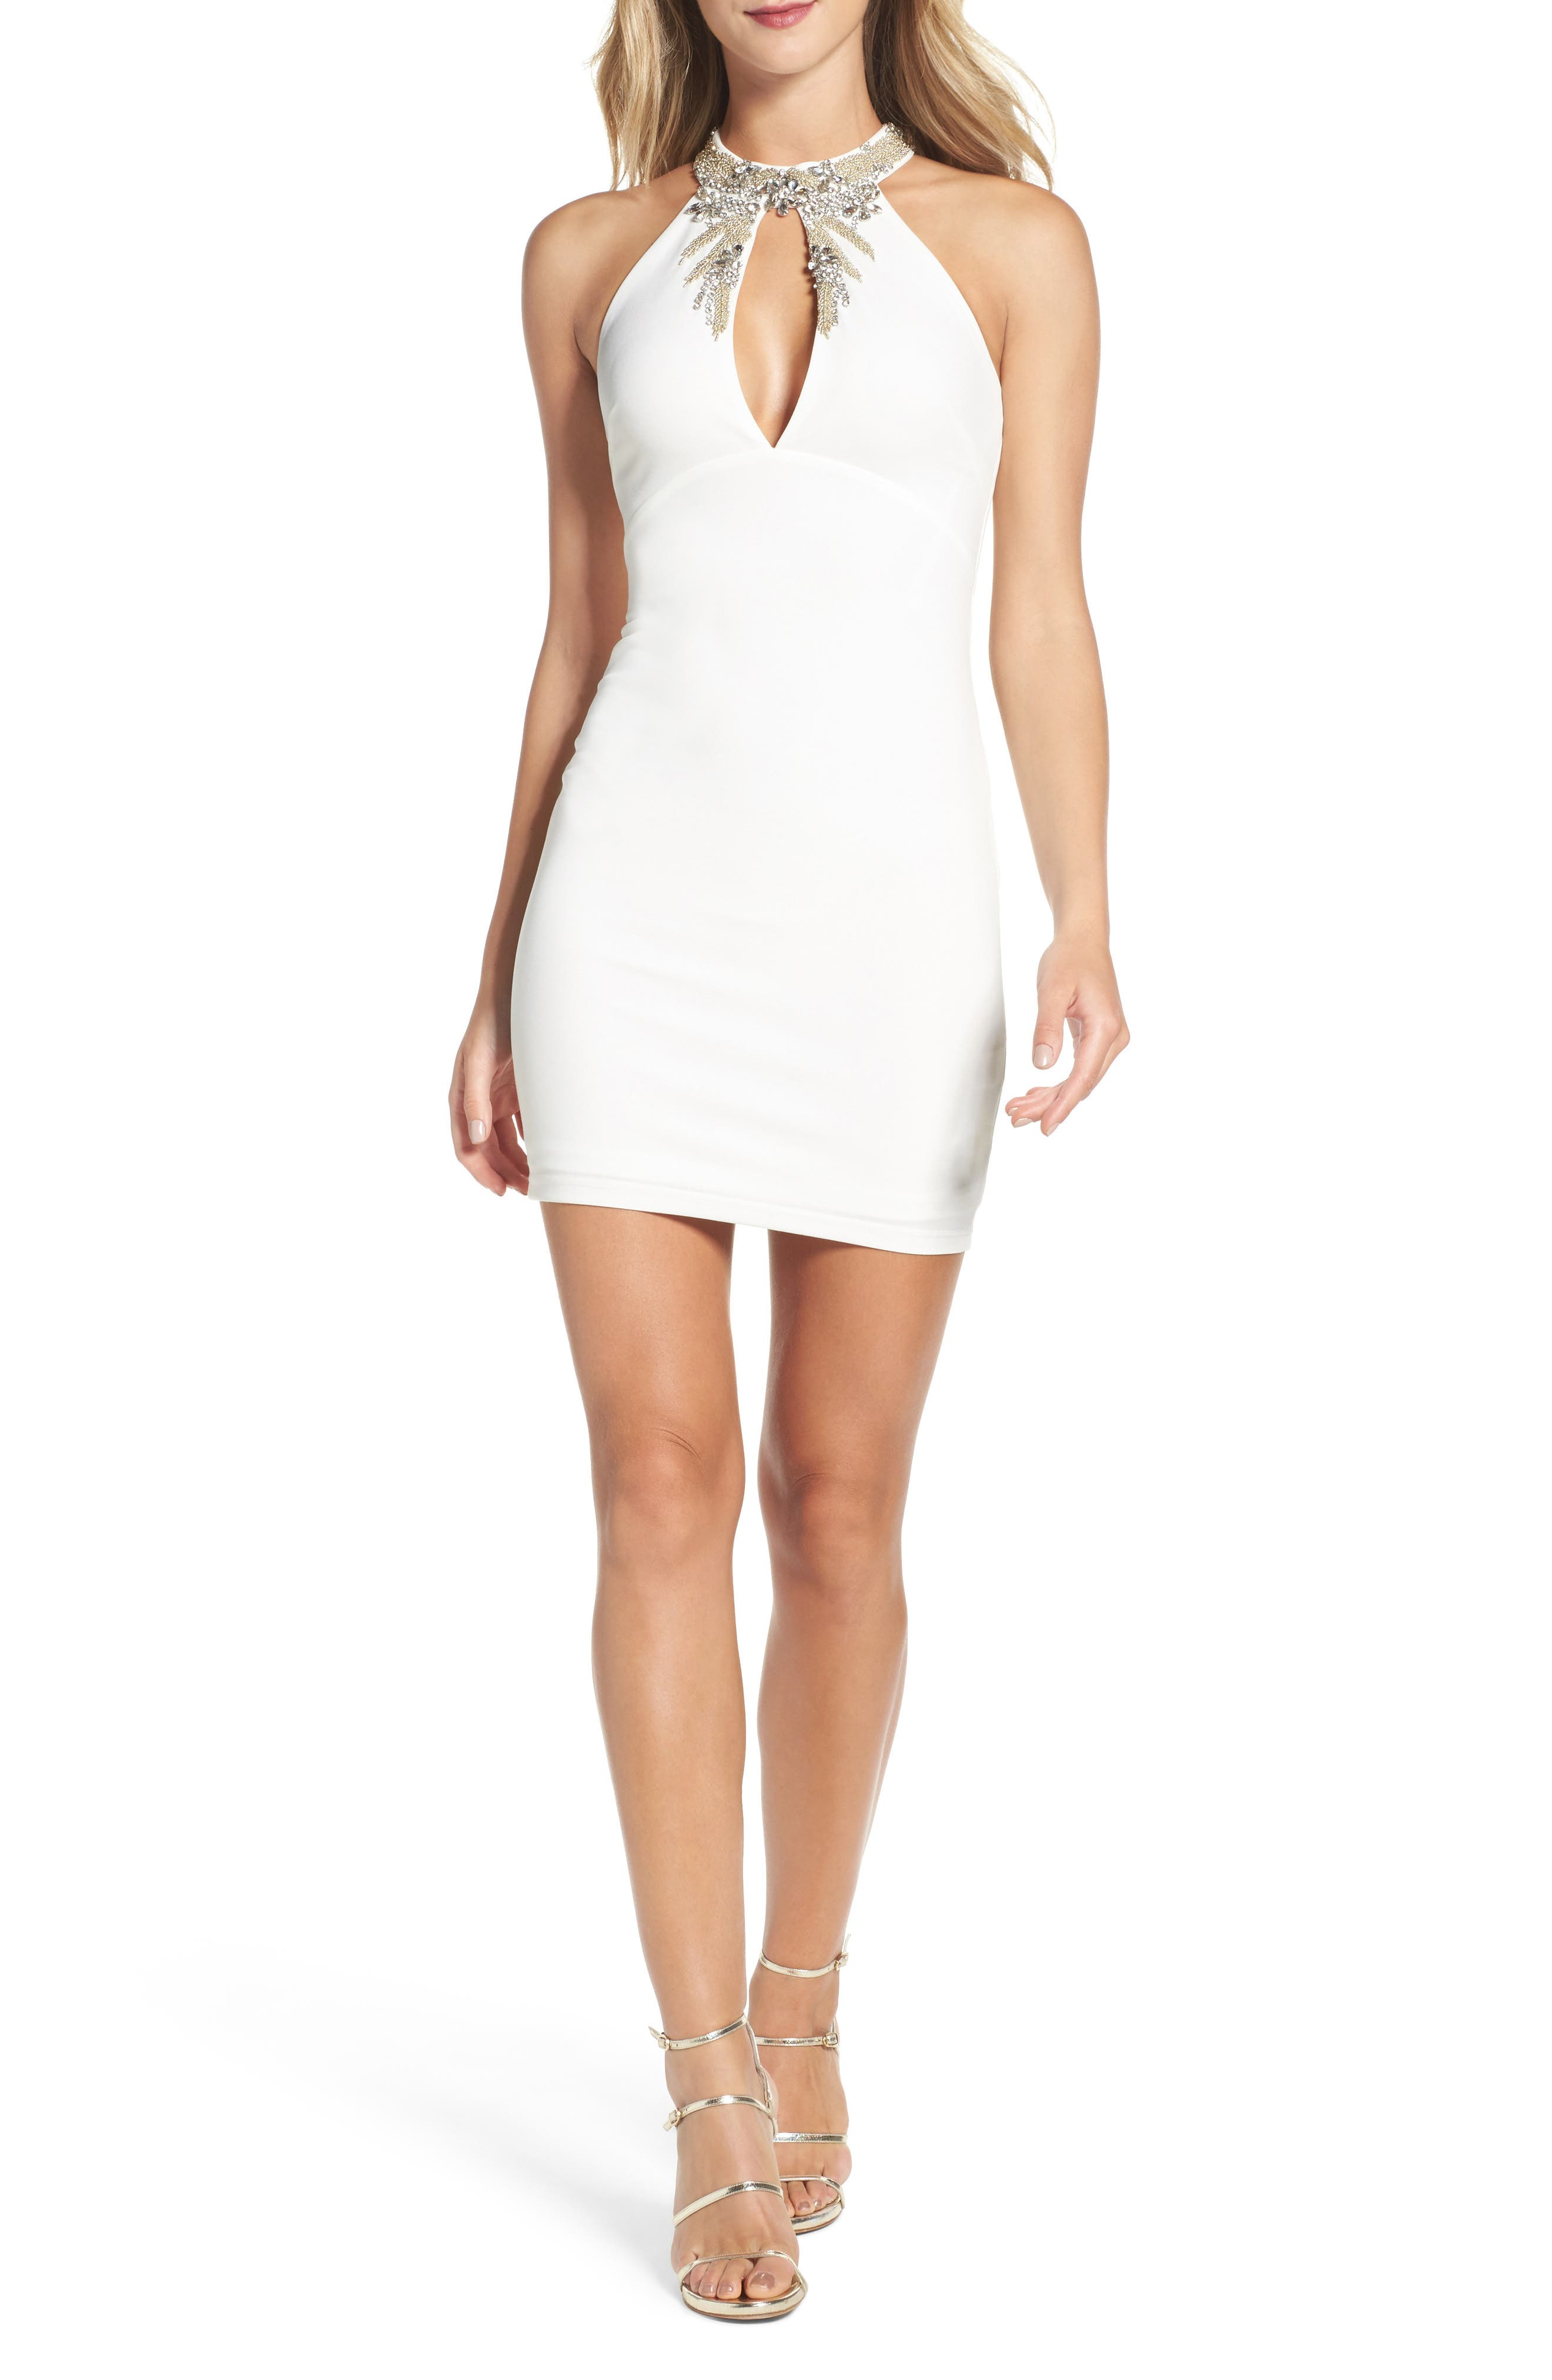 Alluring Evening Beaded Body-Con Dress,                             Main thumbnail 2, color,